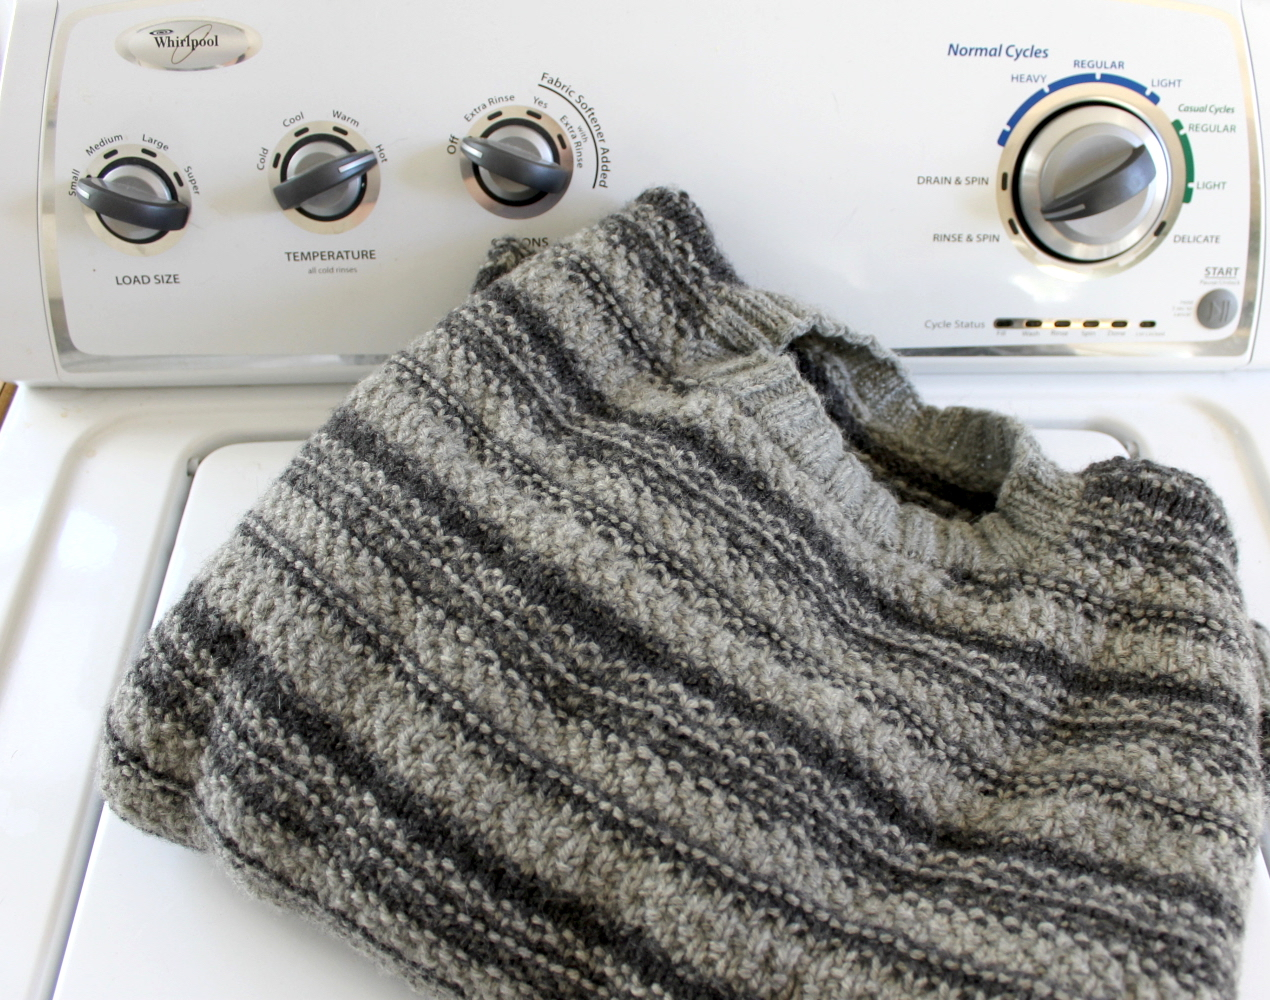 Gray striped knit sweater on top of a washing machine